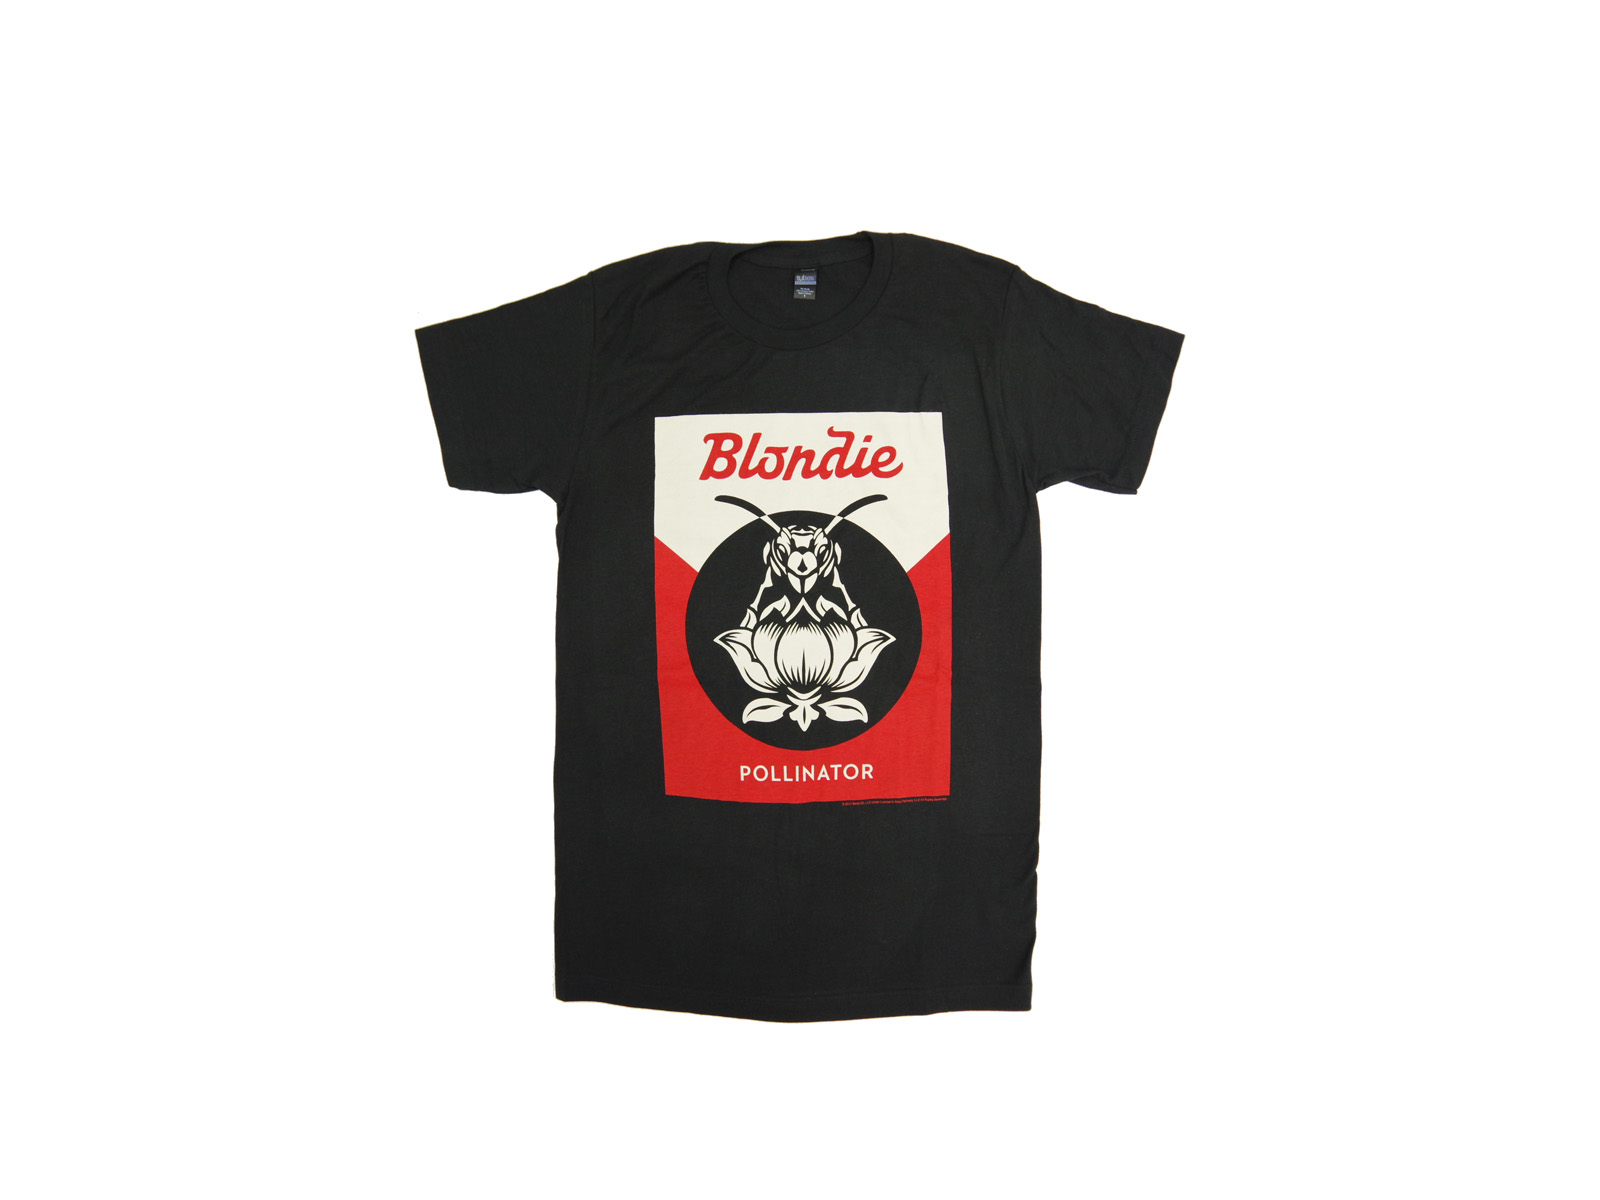 BLONDIE – New Official T-Shirts designed by Shepard Fairey